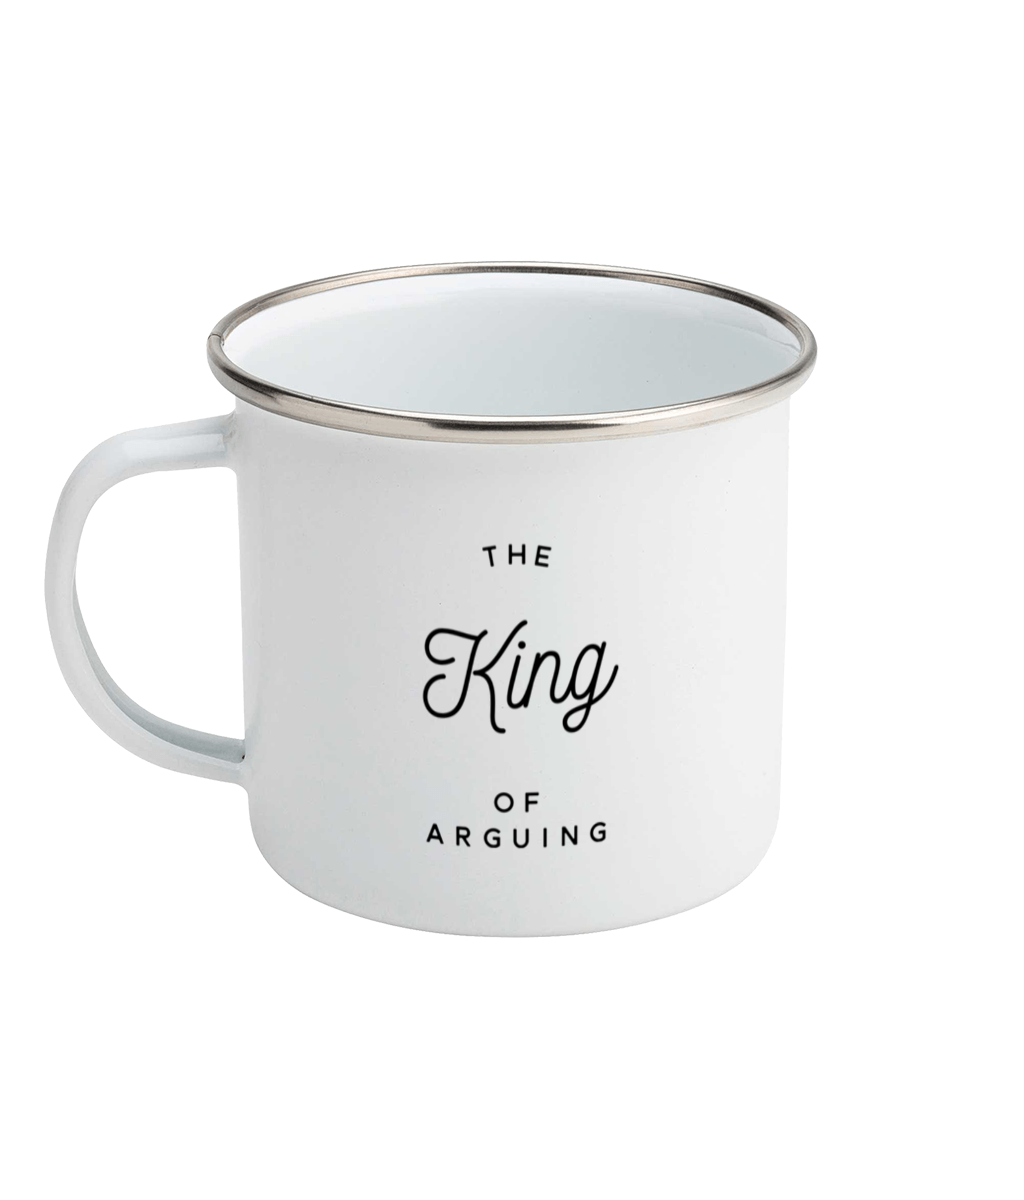 The King of Arguing Original Mug Enamel